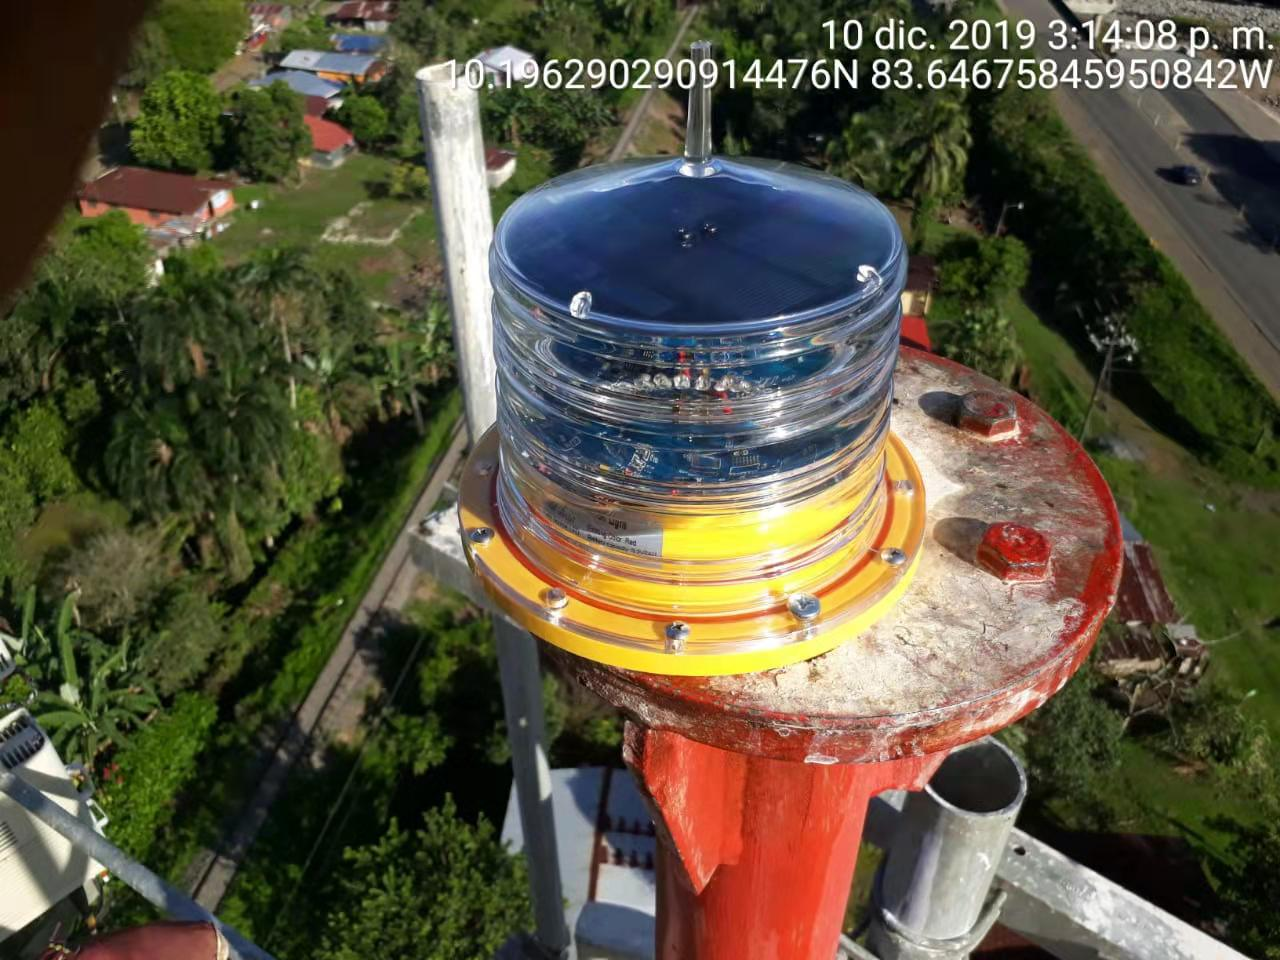 Costa Rica Iron Tower Project